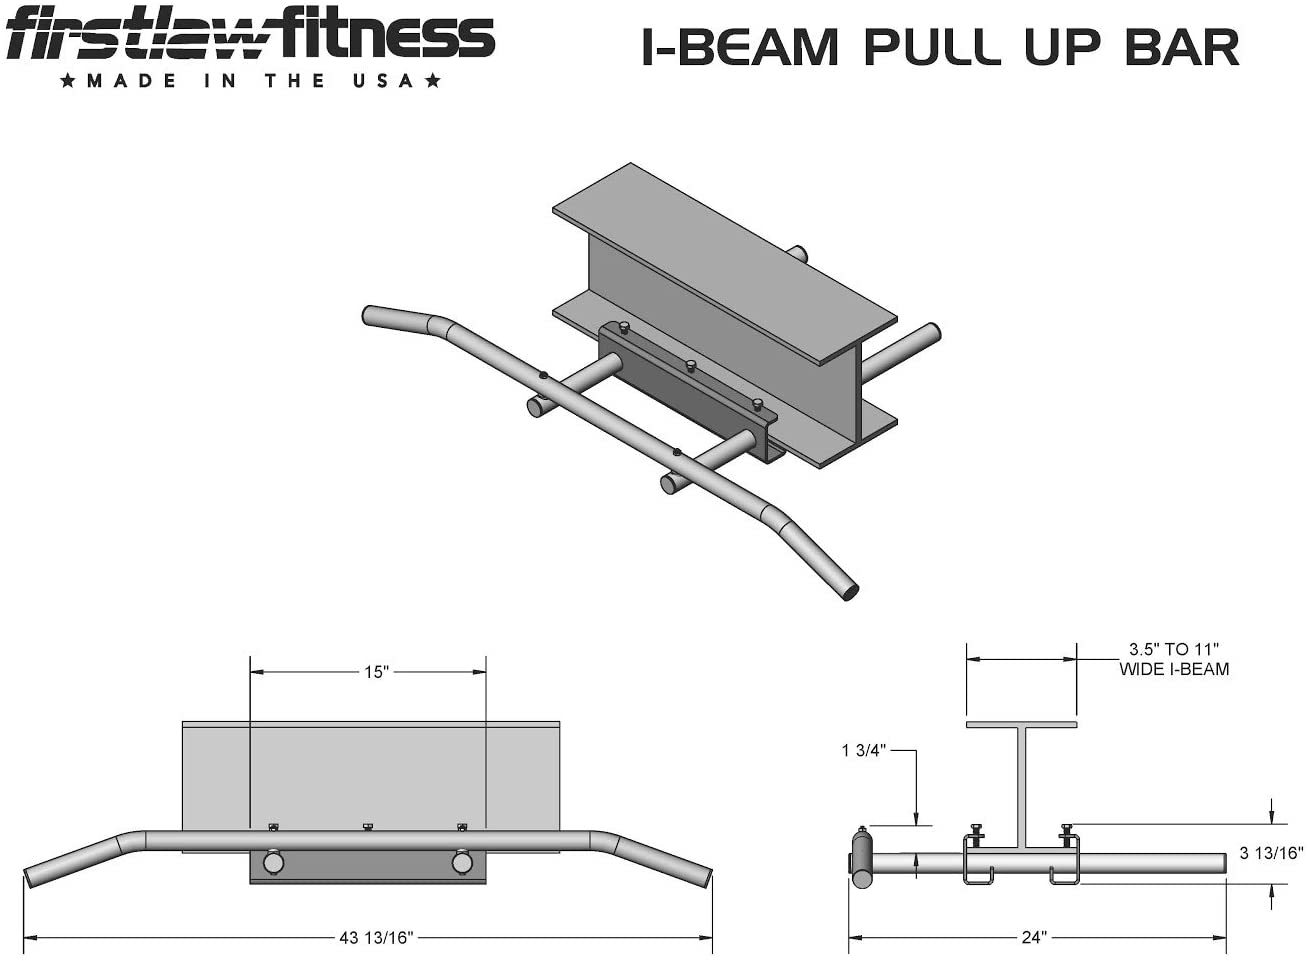 600 LBS Weight Limit - I-Beam Pull Up Bar - Long Bar with Bent Ends - Durable Rubber Grips - Red Label - Made in The USA!